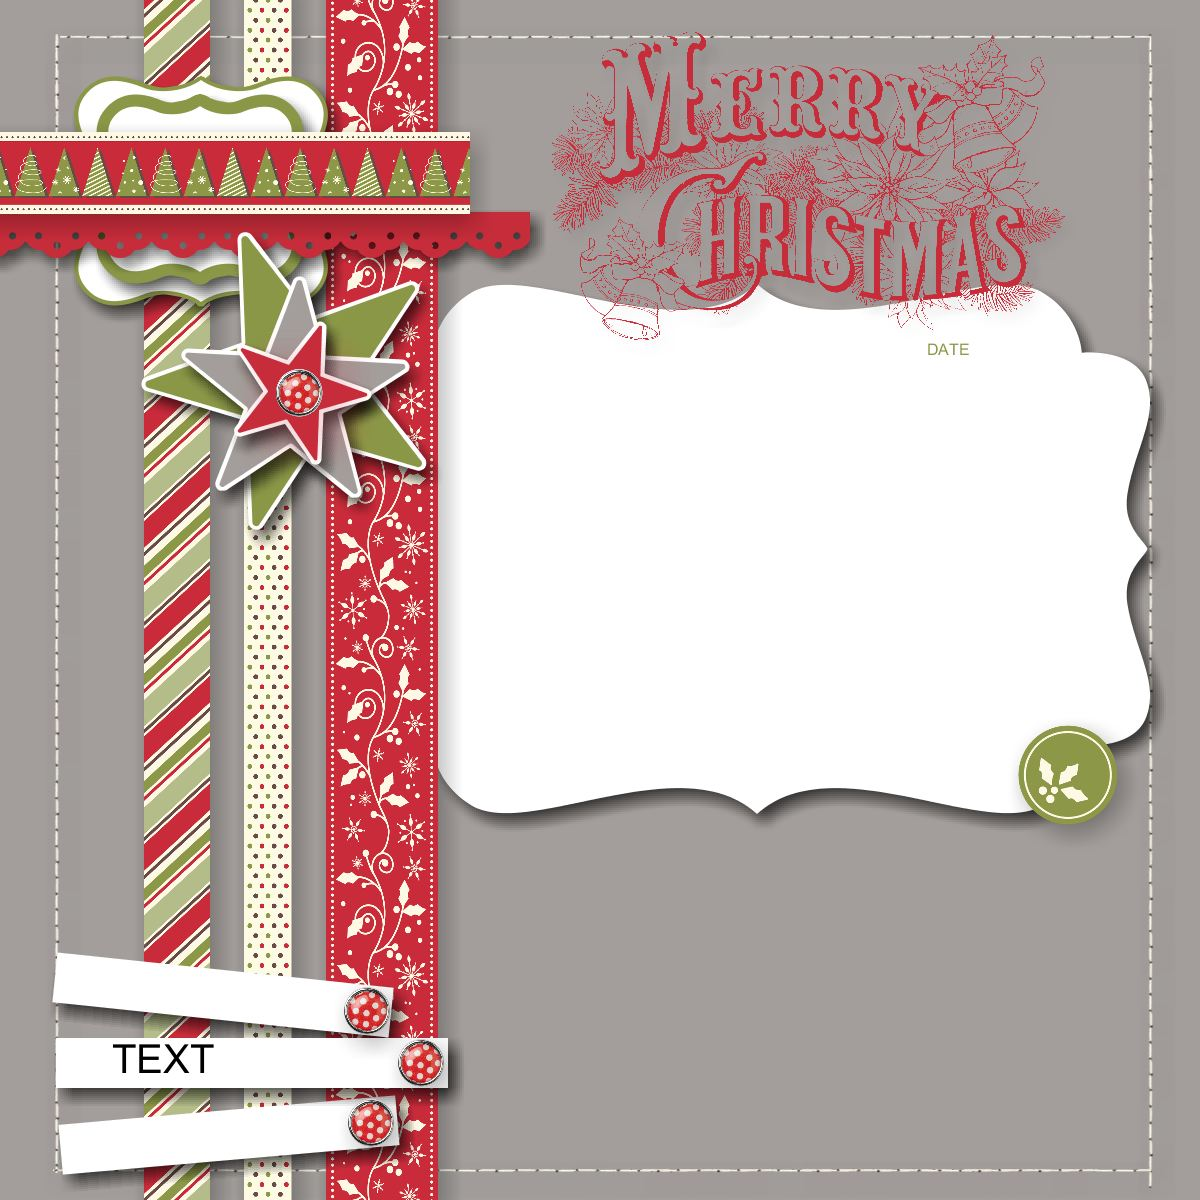 Carole's Corner of Crafts: MDS 092 Merry Christmas ...